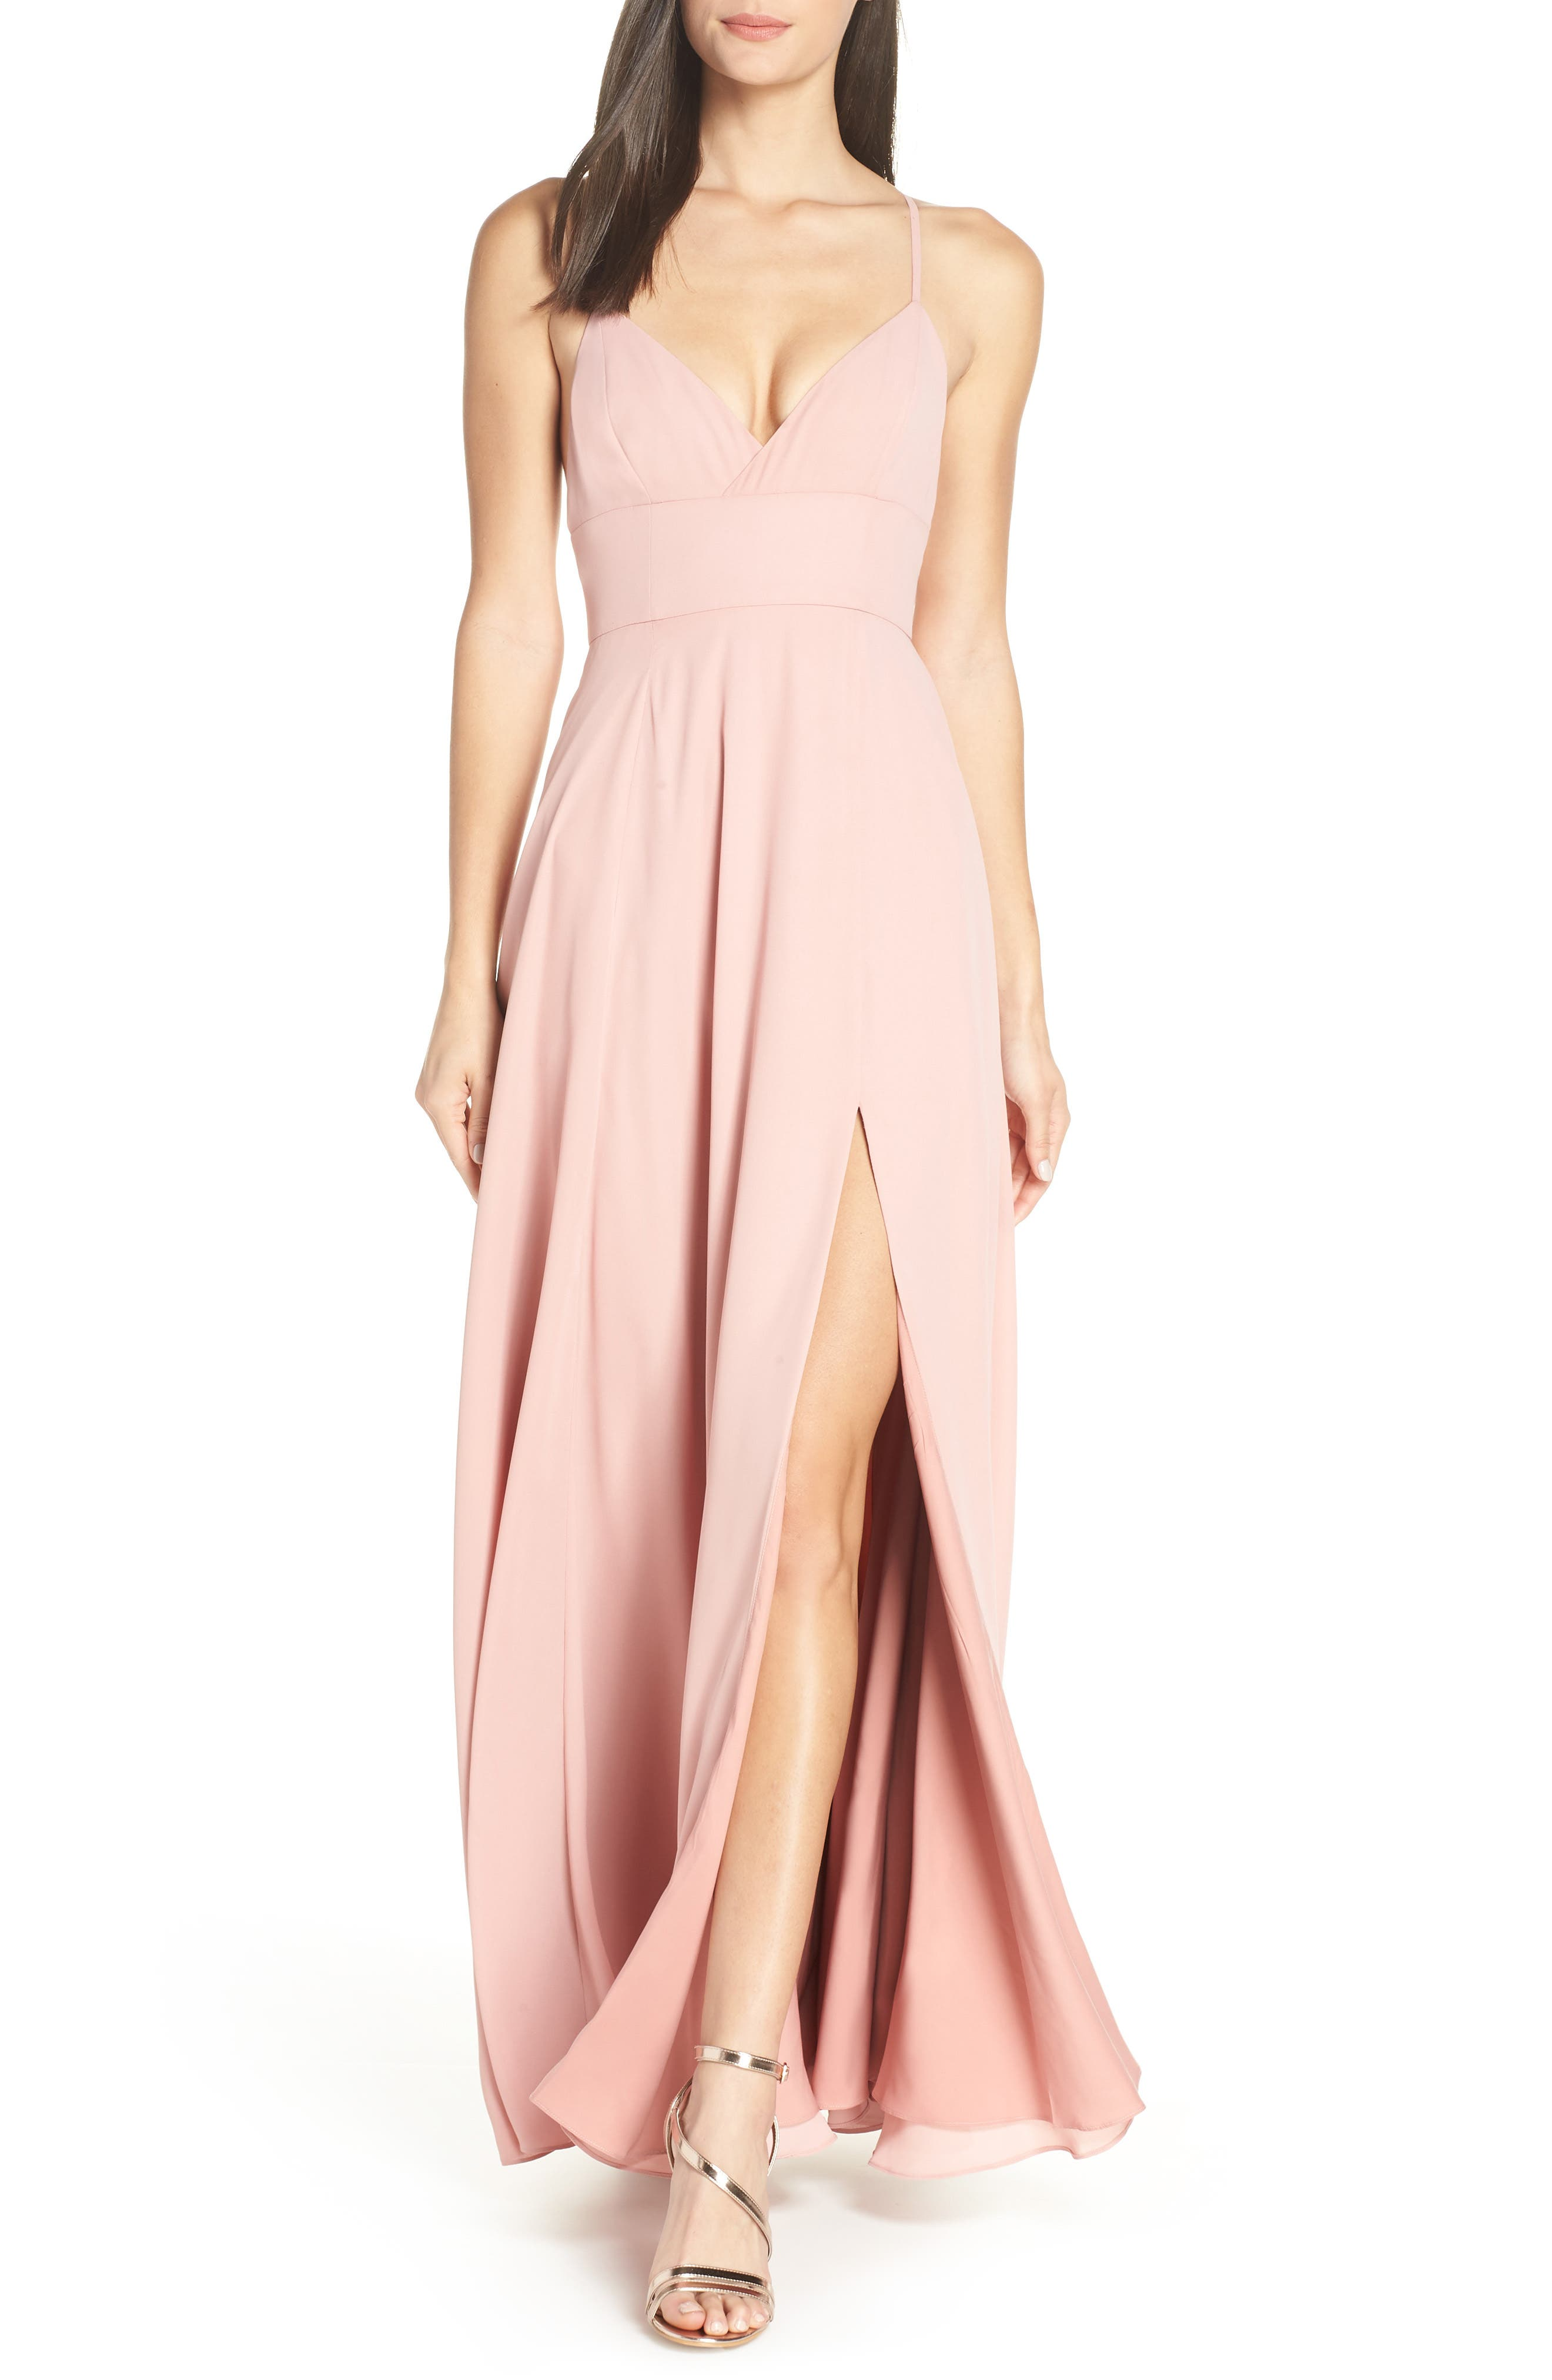 Fame And Partners Strappy Evening Dress, Pink